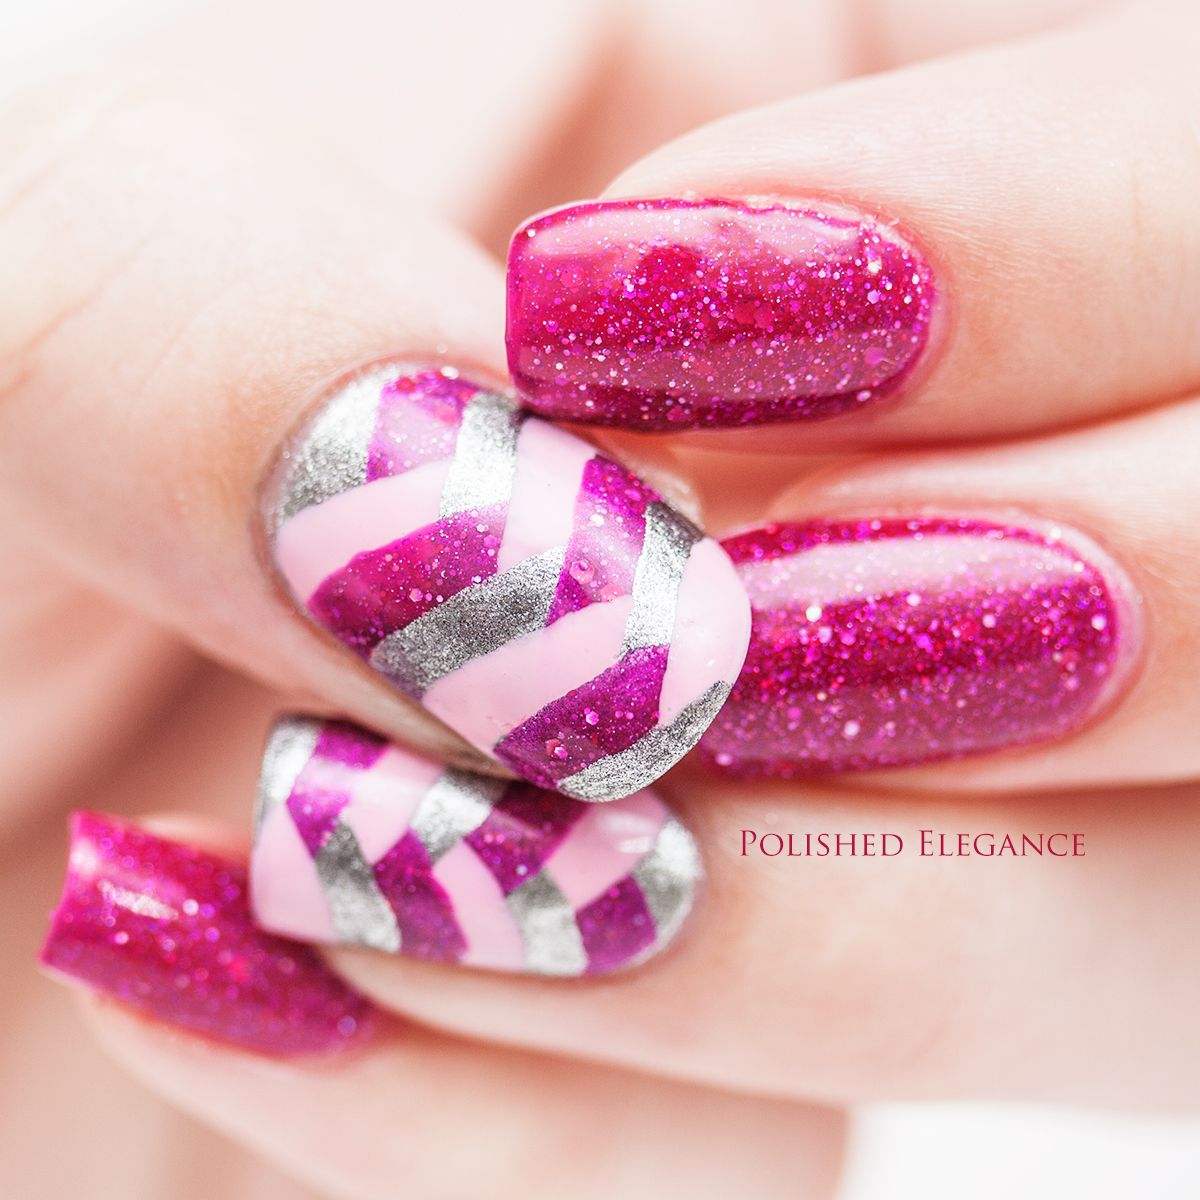 KBShimmer - It's Razz-ical swatch review nail polish fishtail braid nail art manicure